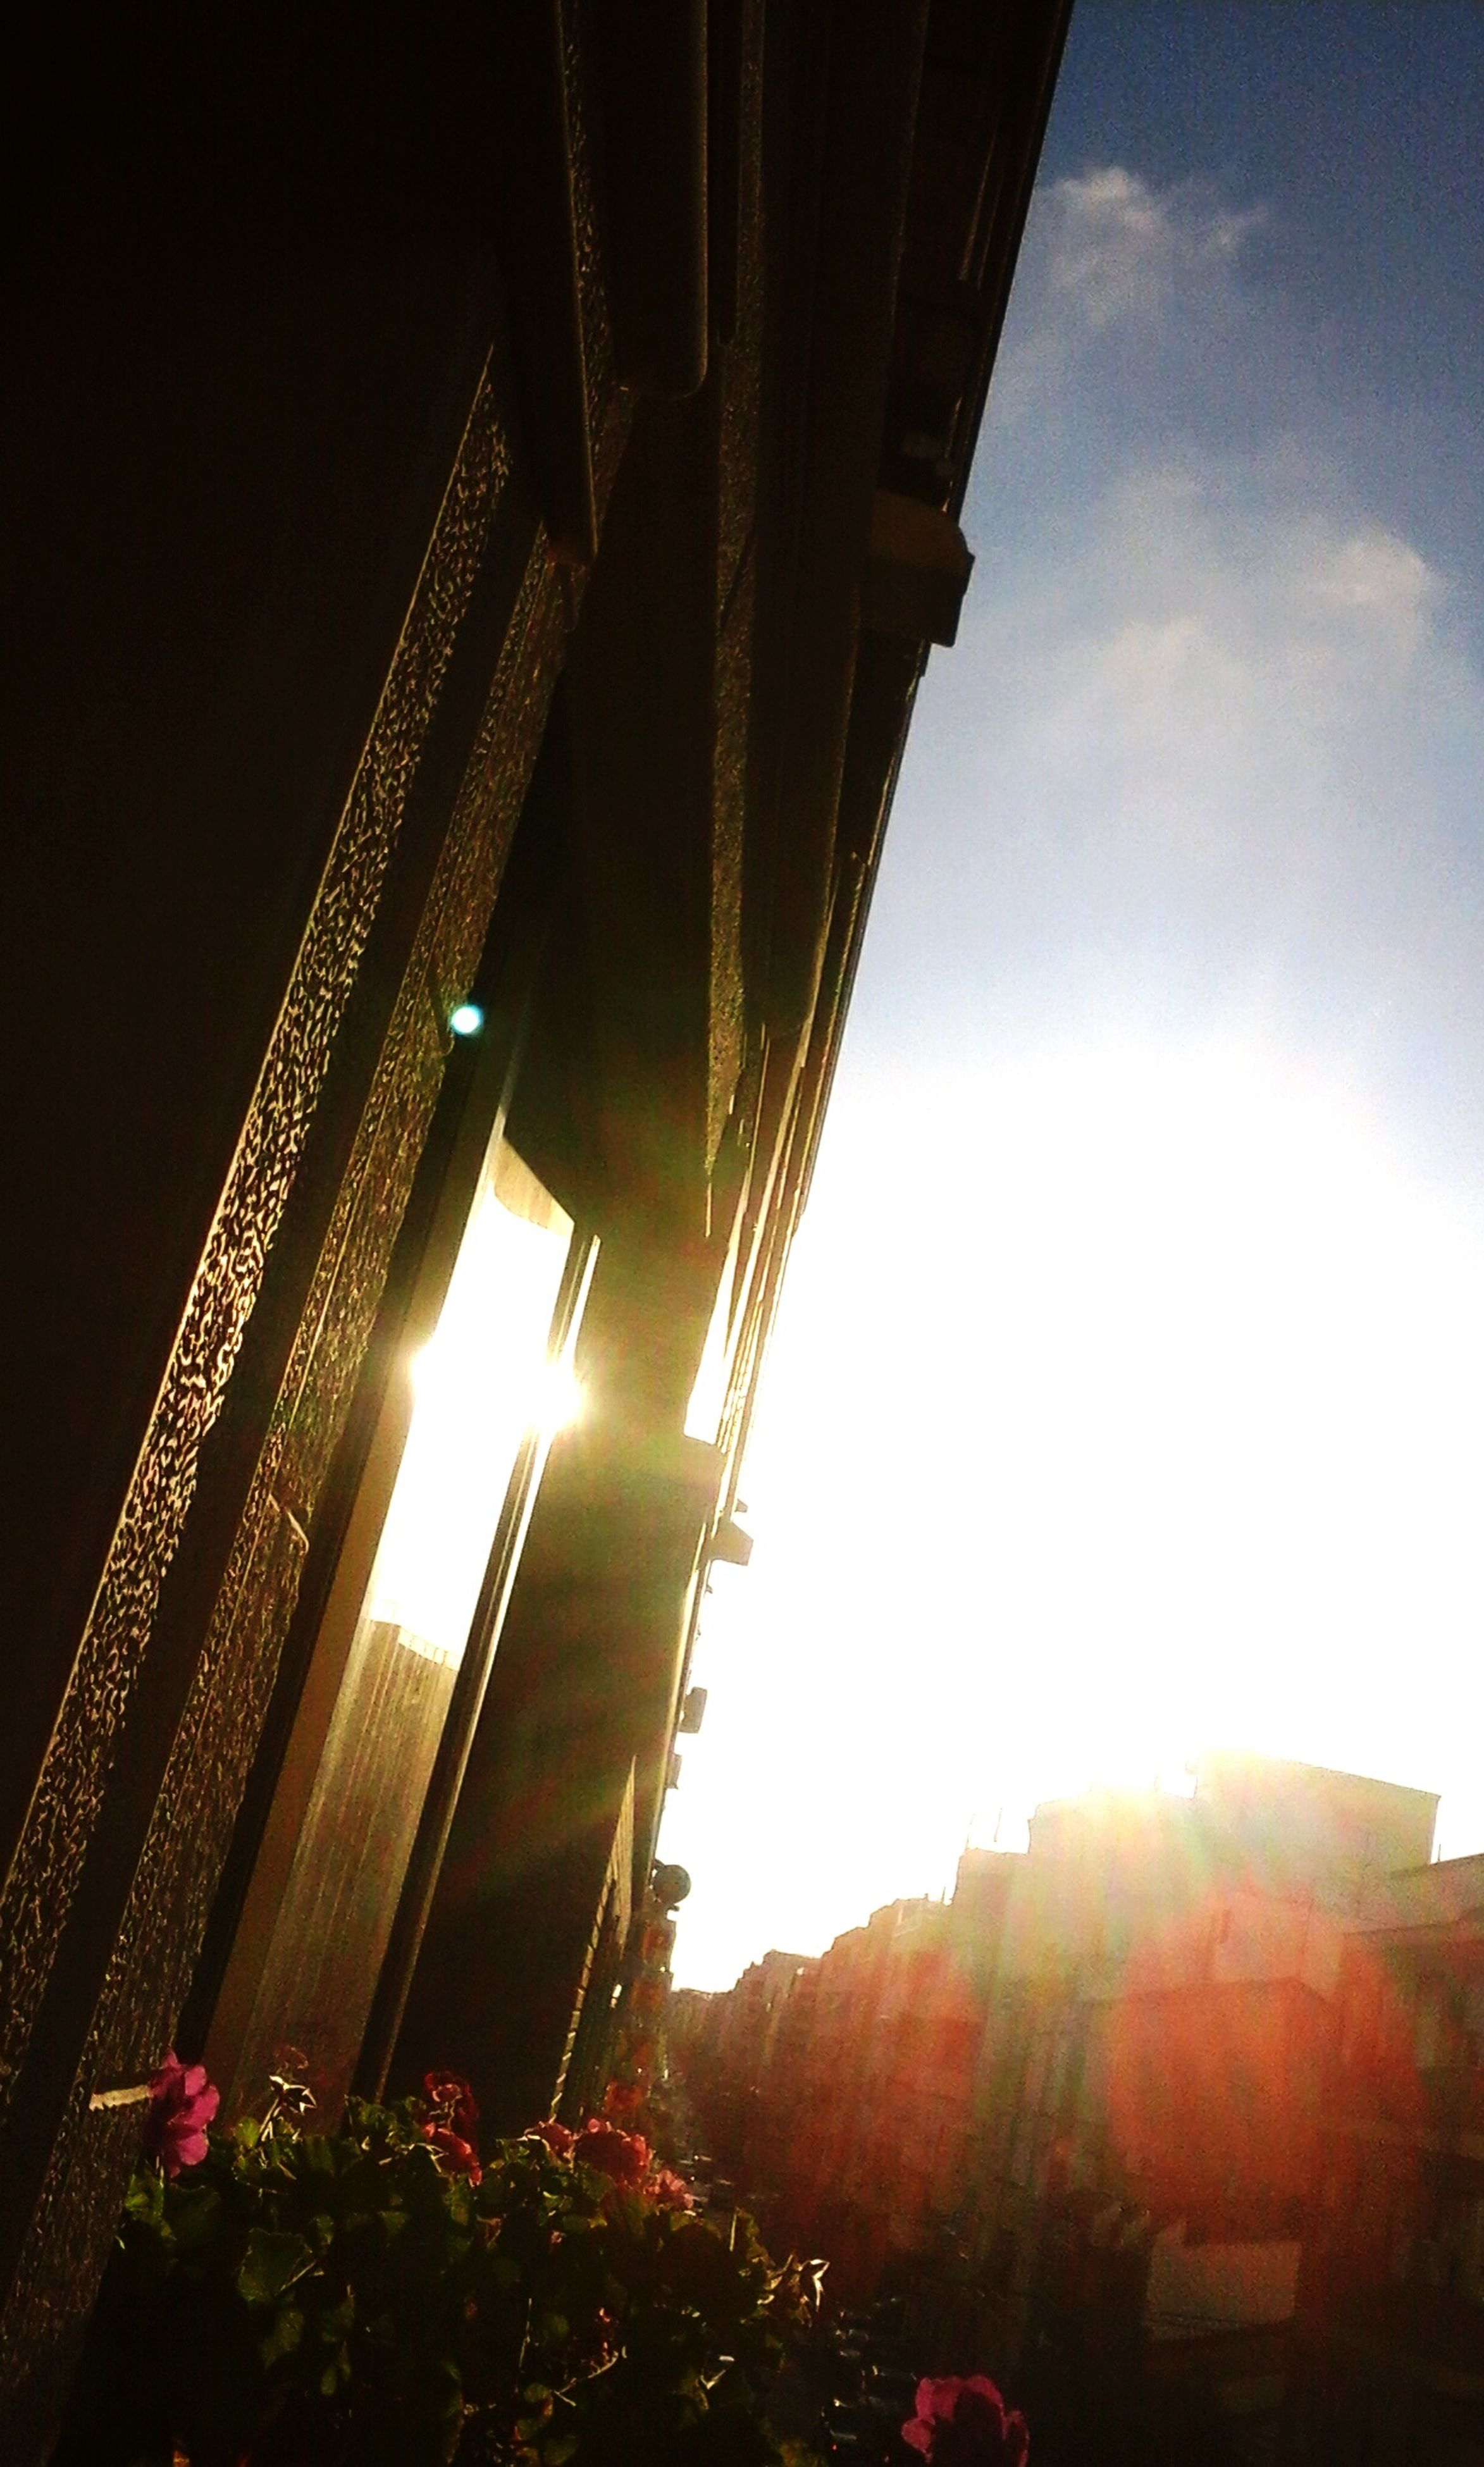 architecture, built structure, low angle view, building exterior, sky, city, sun, lens flare, sunlight, sunbeam, illuminated, outdoors, bridge - man made structure, no people, connection, building, cloud - sky, city life, sunset, tree